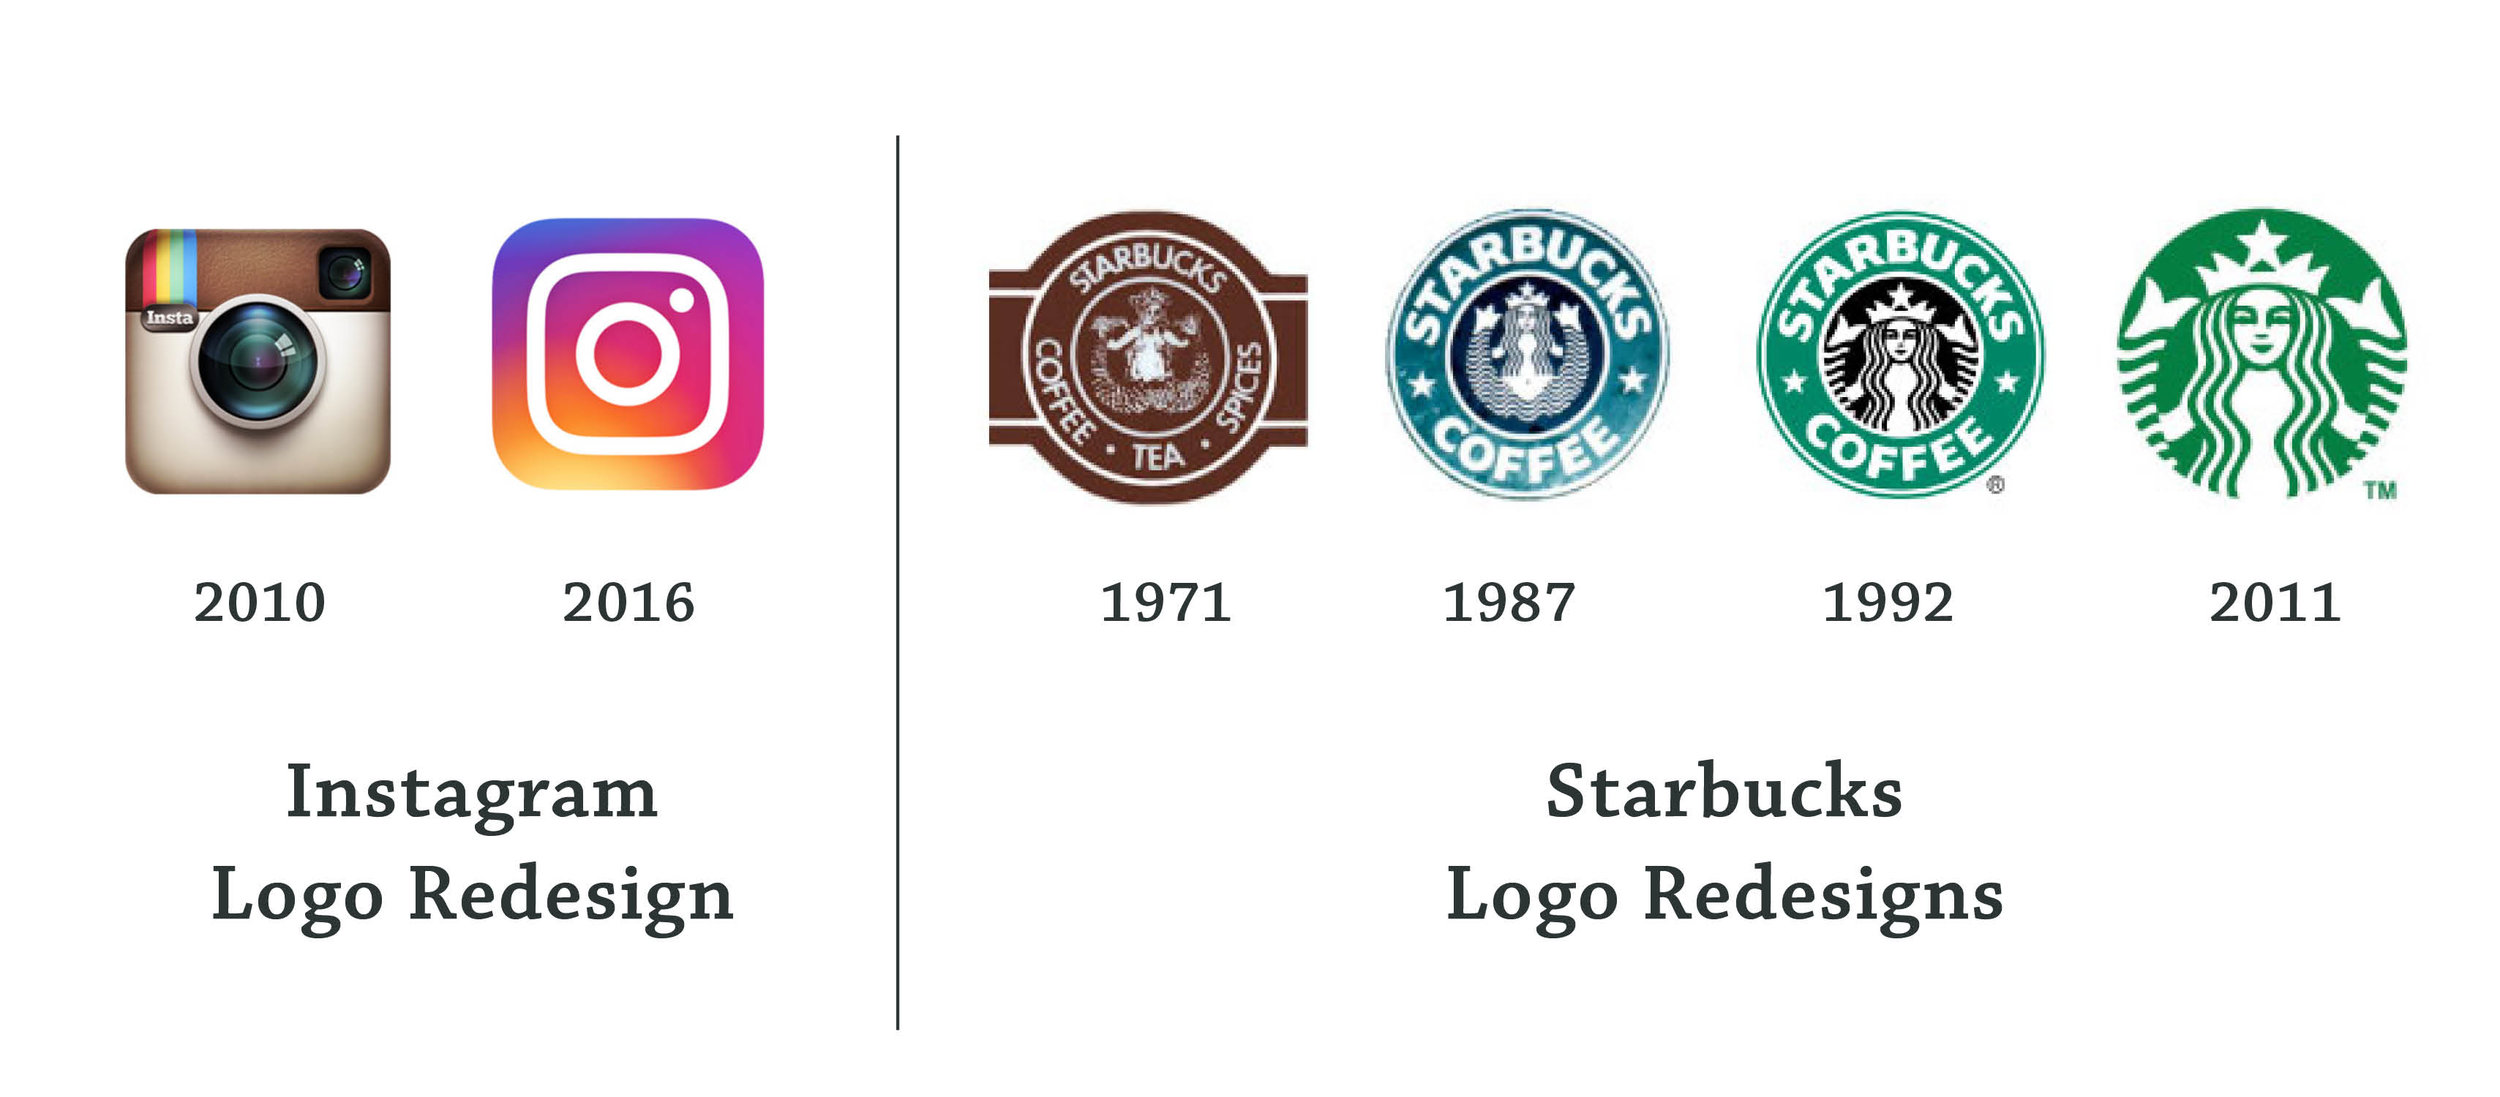 Instagram took pieces of their original logo, like the rainbow stripes and Polaroid shape, and updated them to reflect modern trends of color gradients and minimalistic icons. Starbucks has undergone four logos during its history. By simplifying the details and colors, we arrive with a modern, versatile logo.